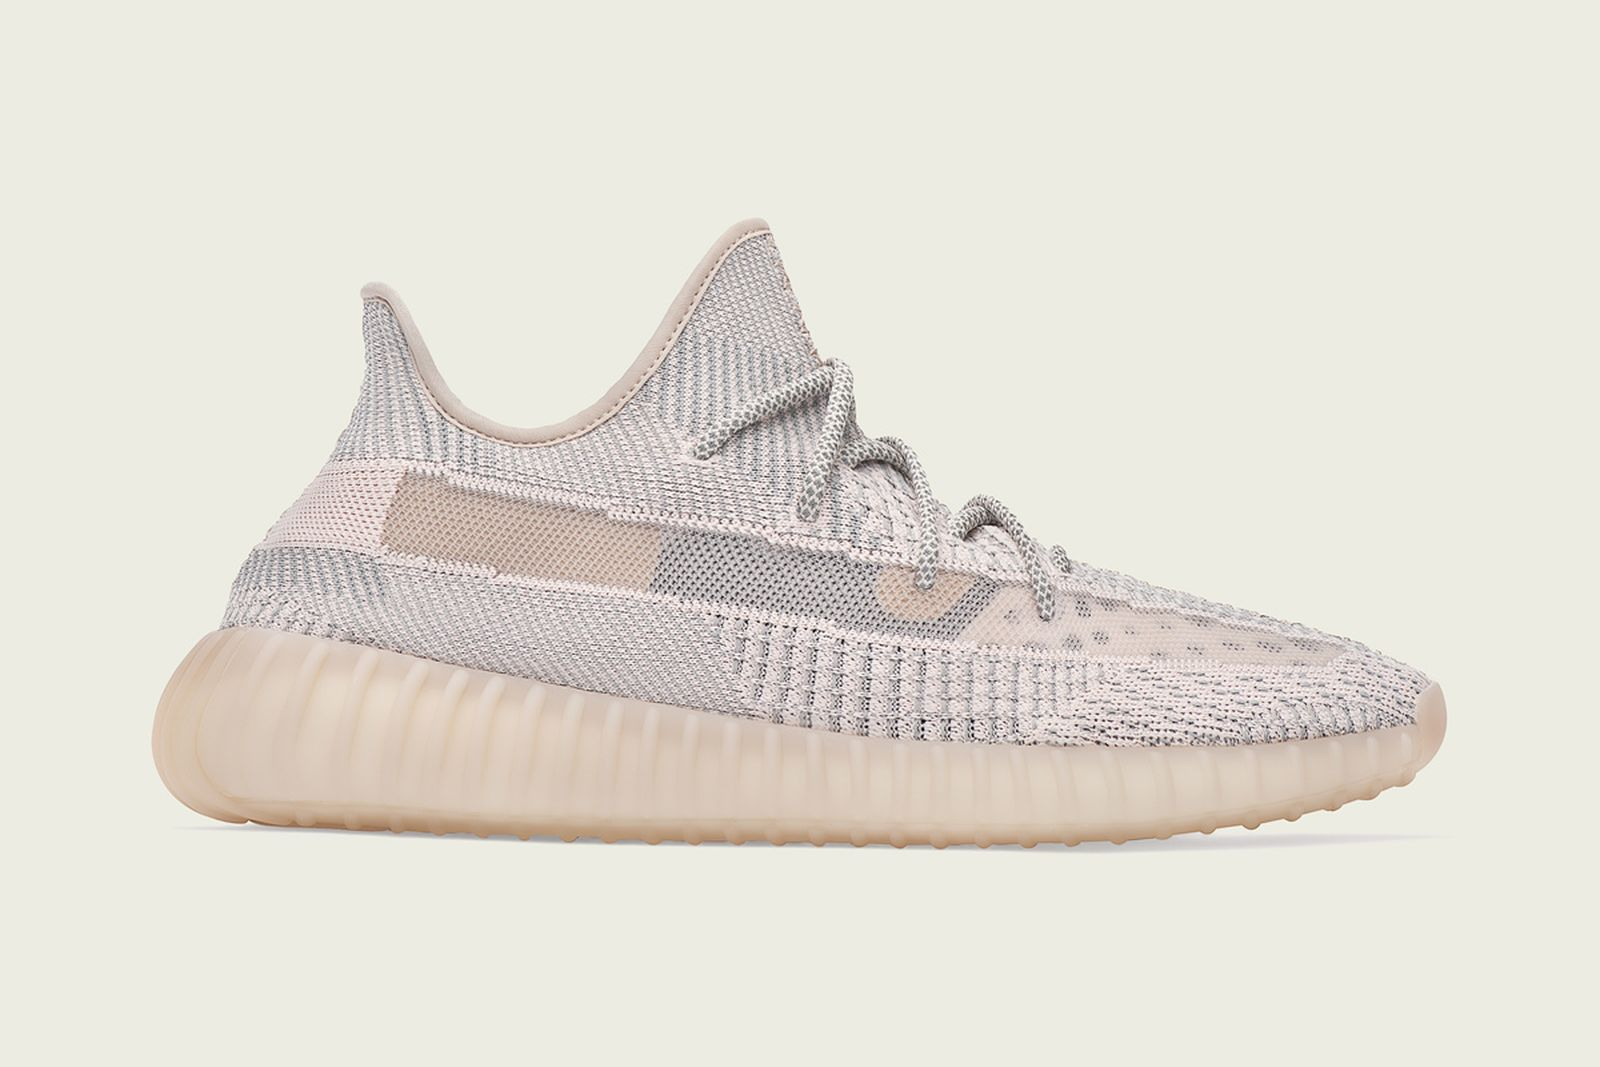 yeezy shoes guide 350 v2 synth Grailed StockX adidas Originals